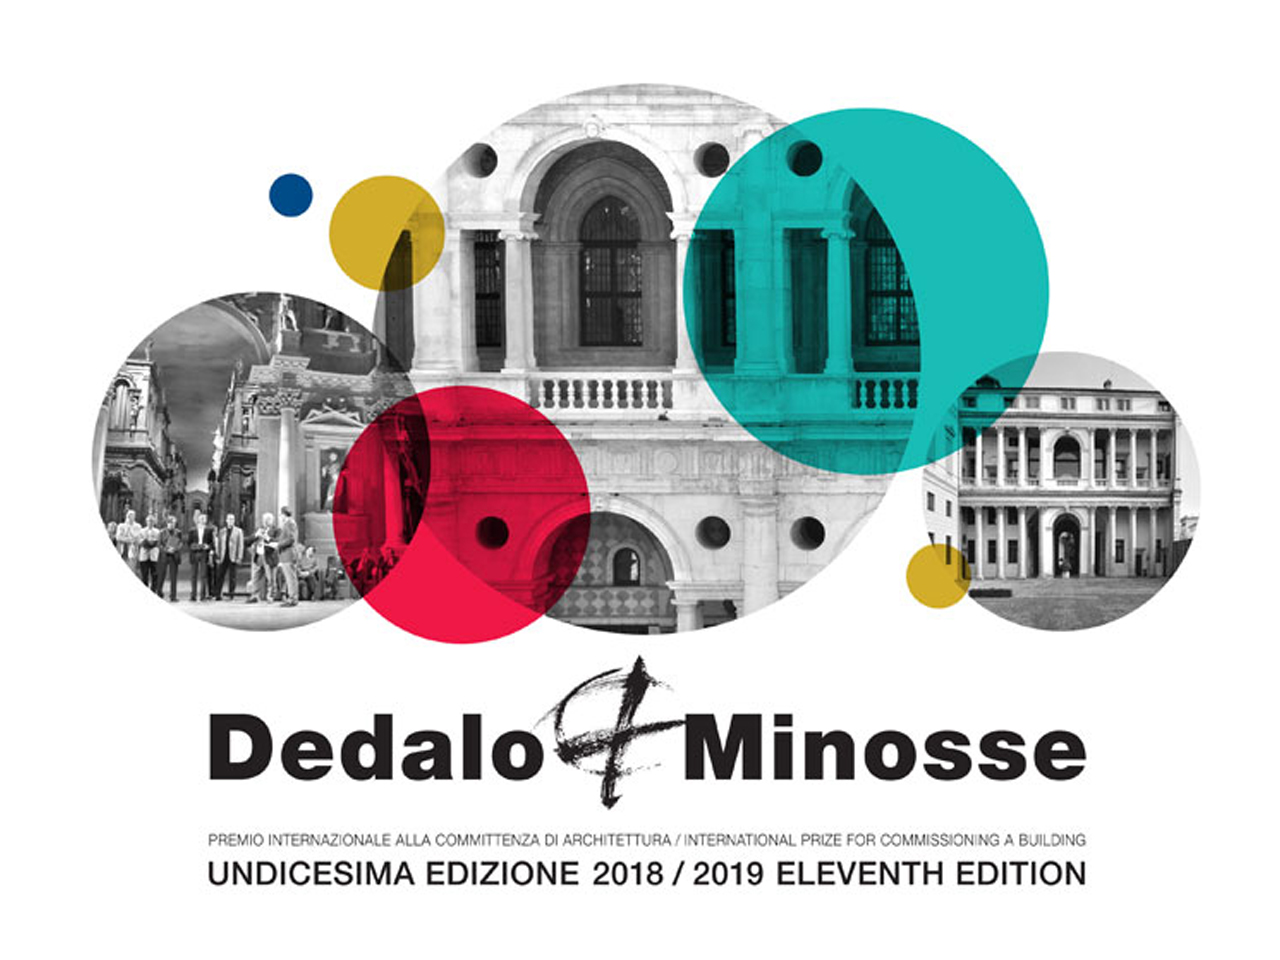 dedalo minosse – international prize for commissioning a building